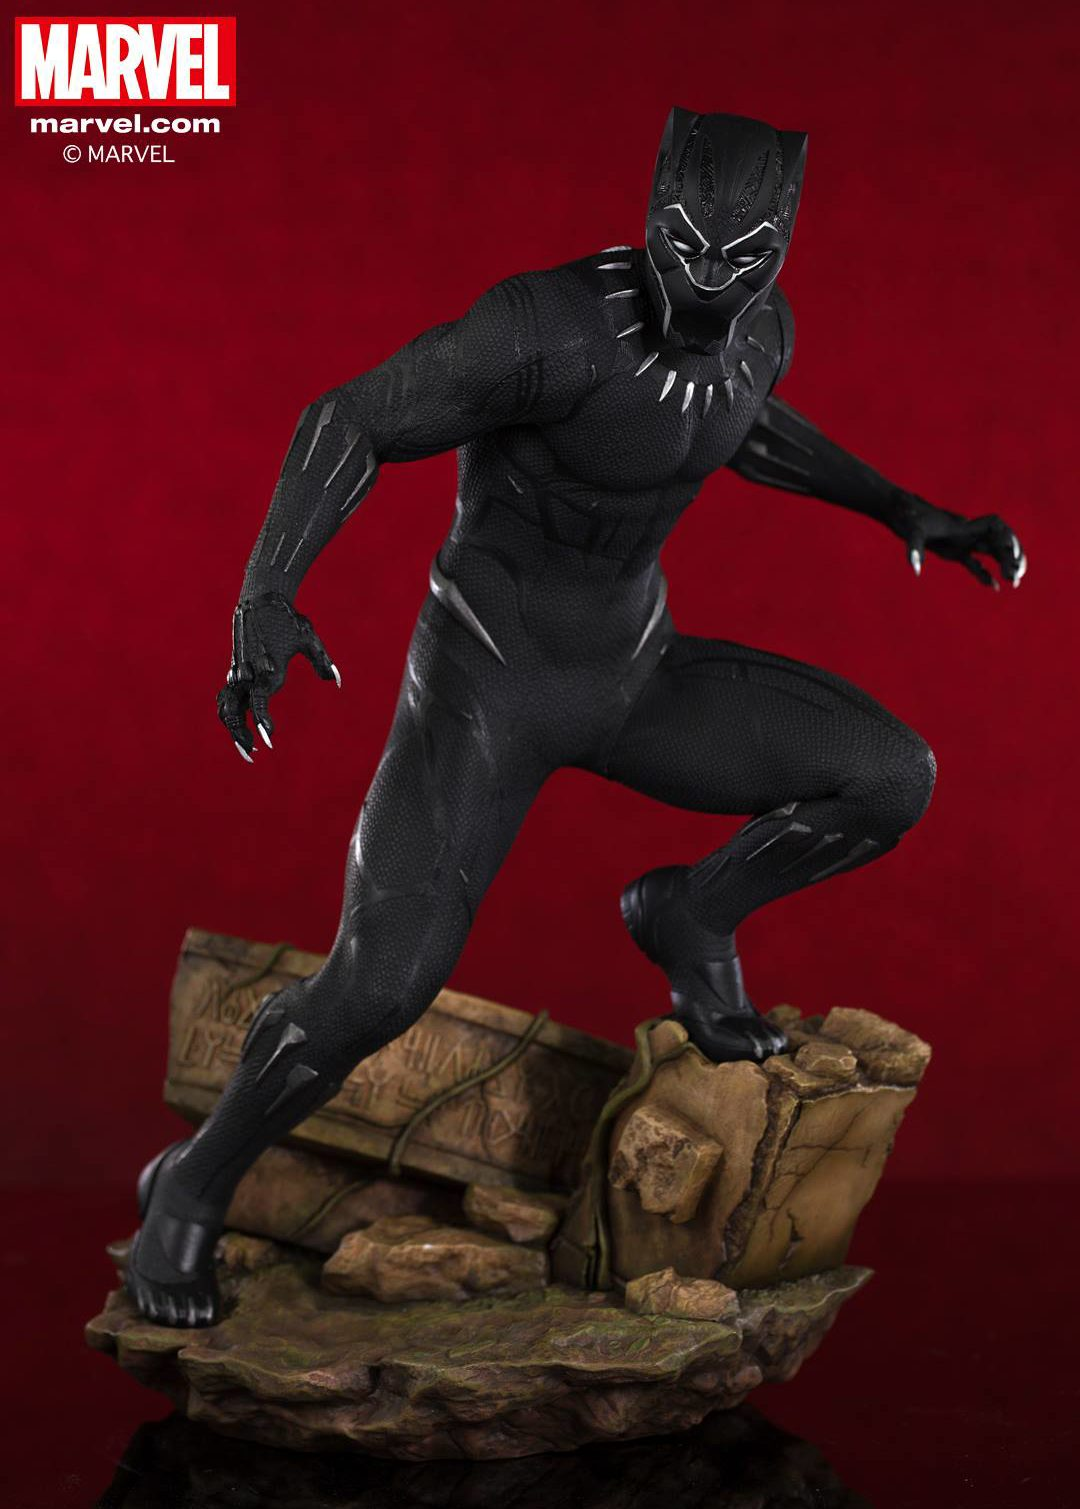 MARVEL PREMIERE BLACK PANTHER MOVIE STATUE ~ NEW IN BOX